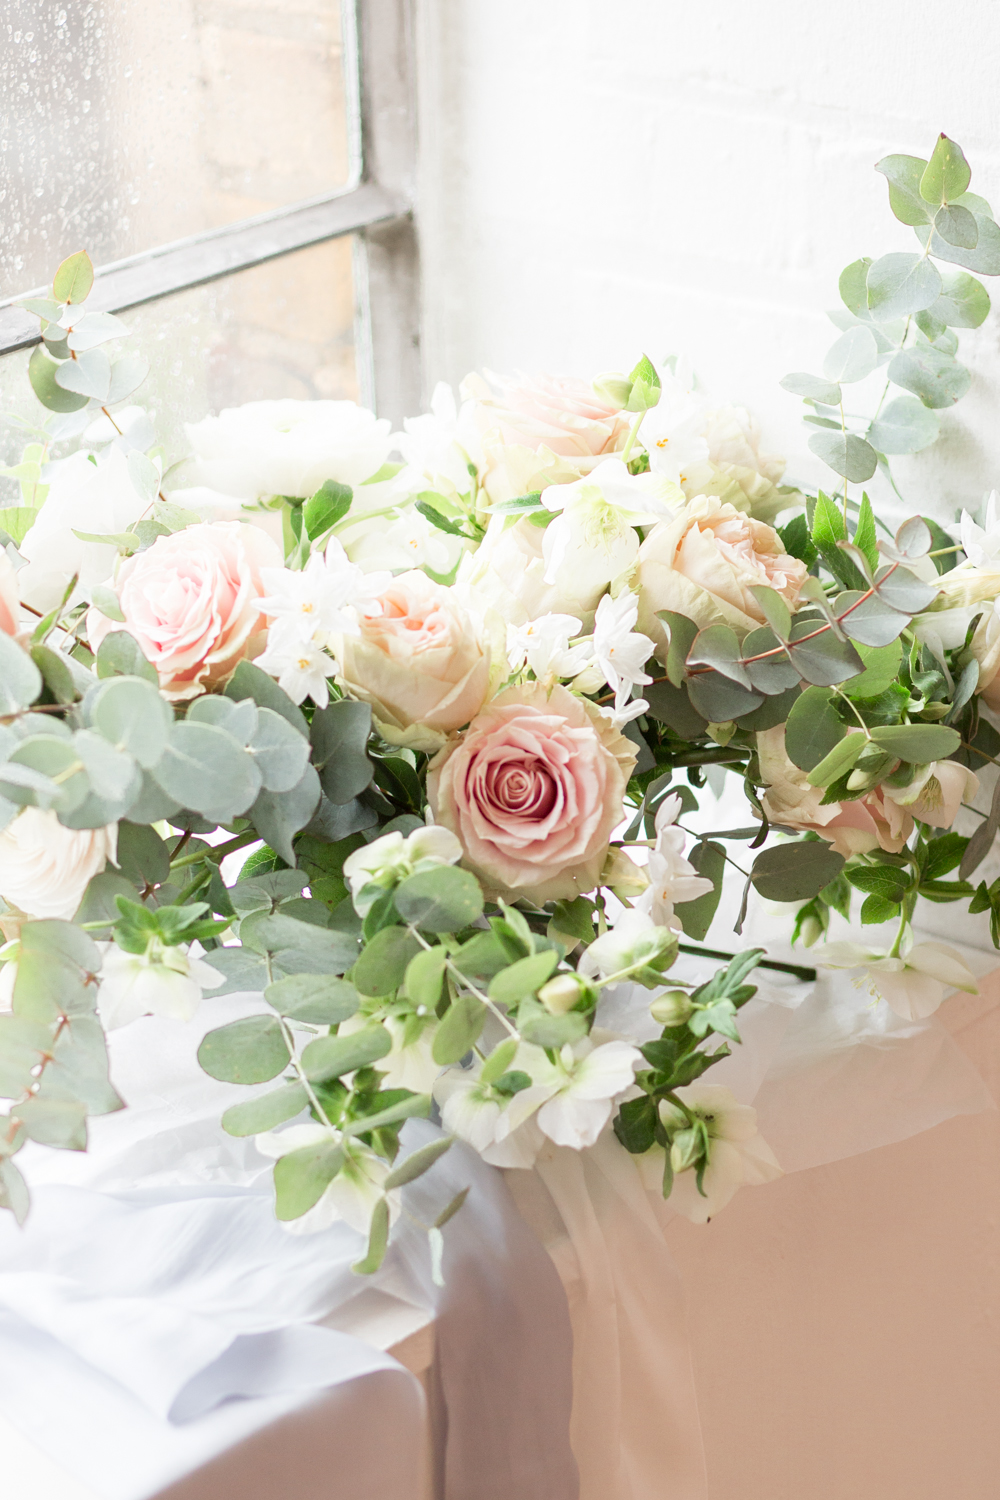 The Timeless Stylist-UK Wedding Styling-Elegant and Romantic Style Boudoir Shoot-Bridal Bouquet